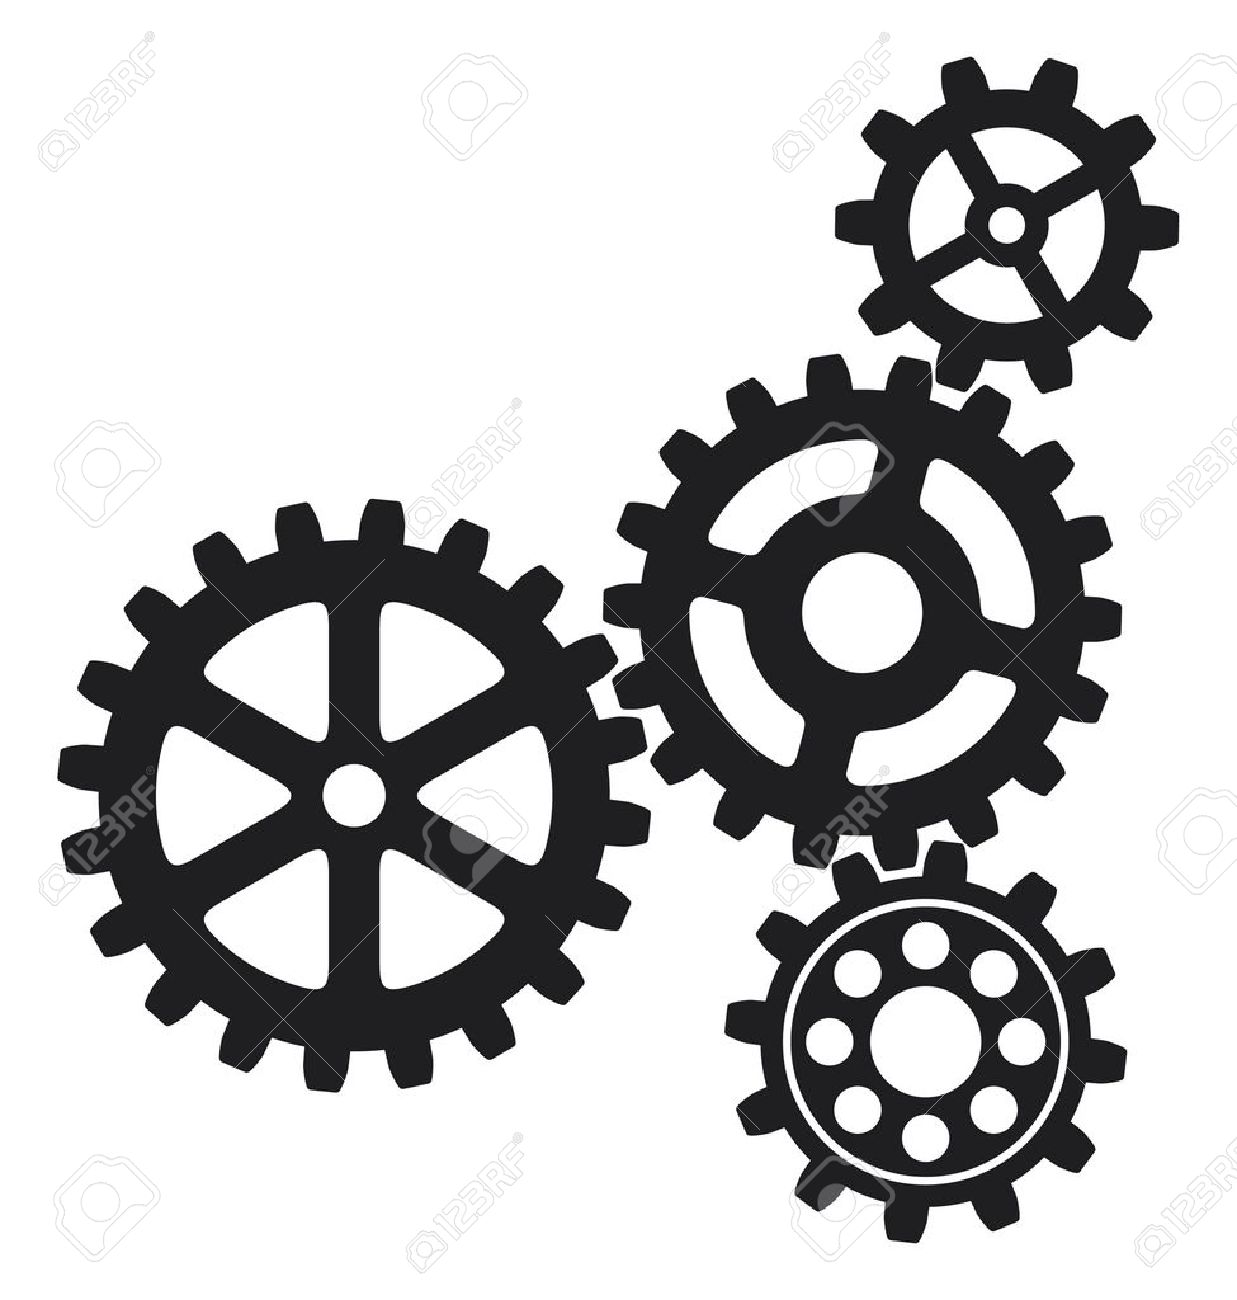 1237x1300 Clockwork Clipart Black Gear